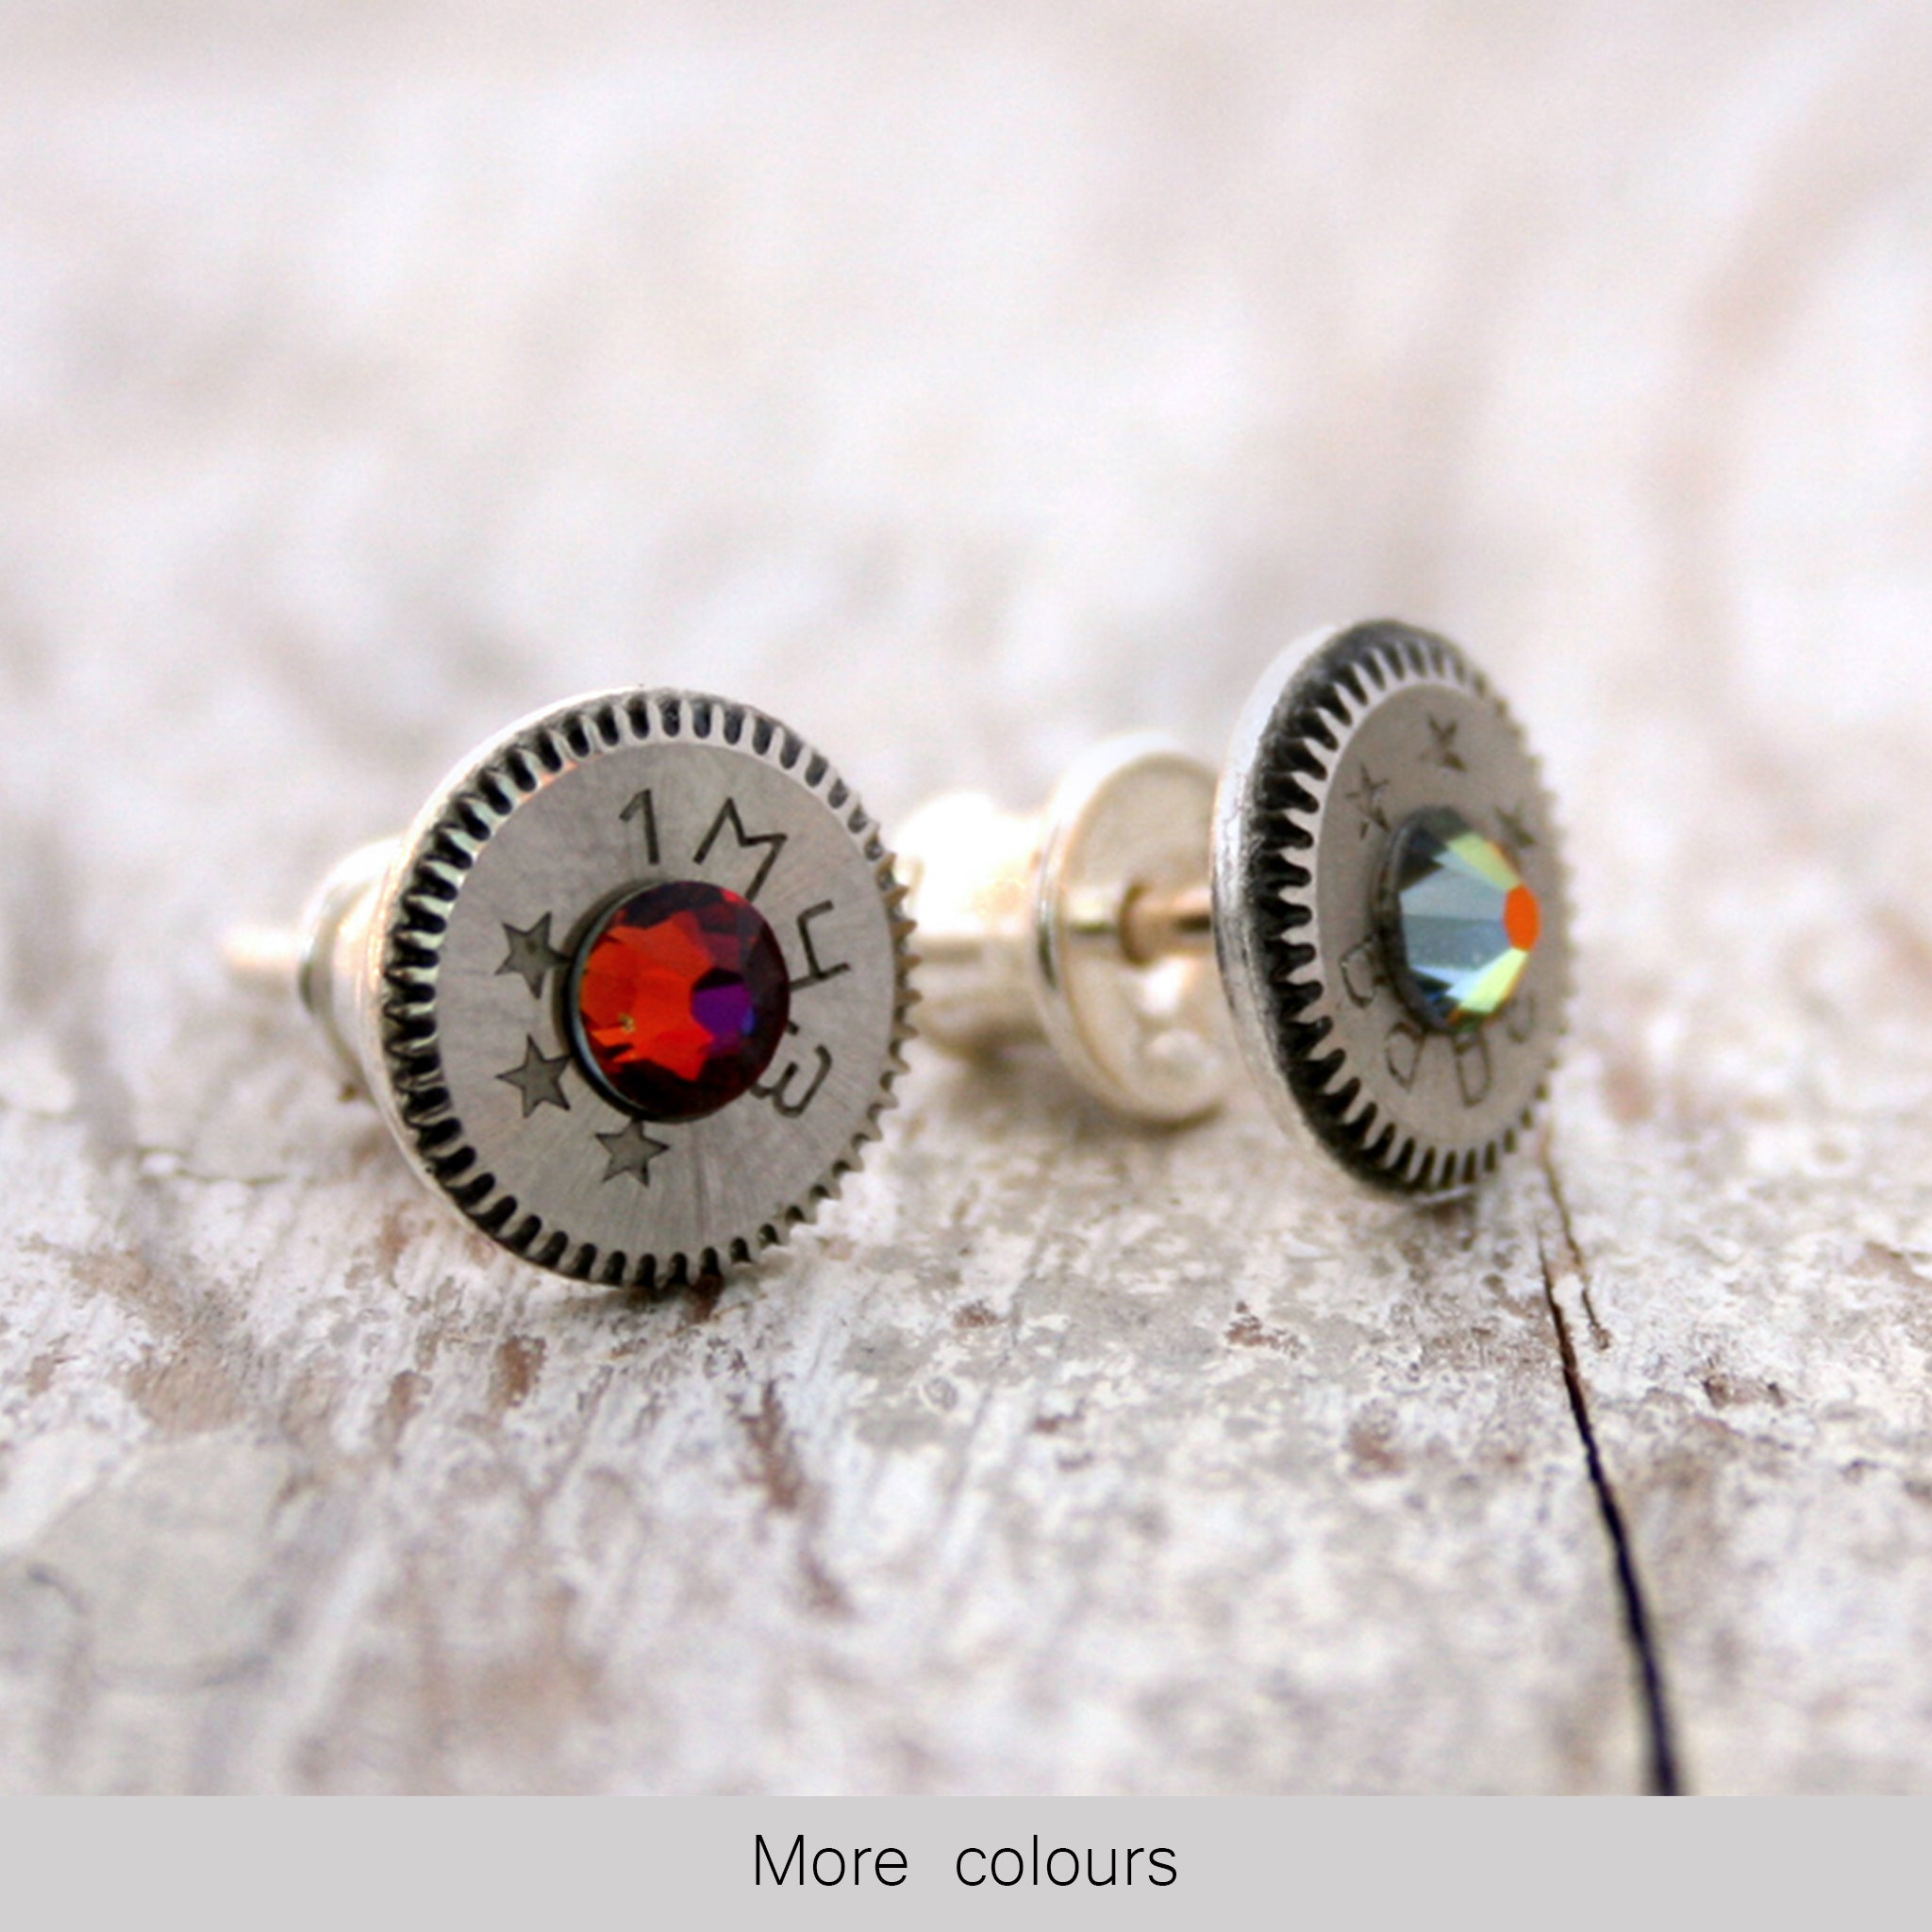 Birthstone Earrings in steampunk style